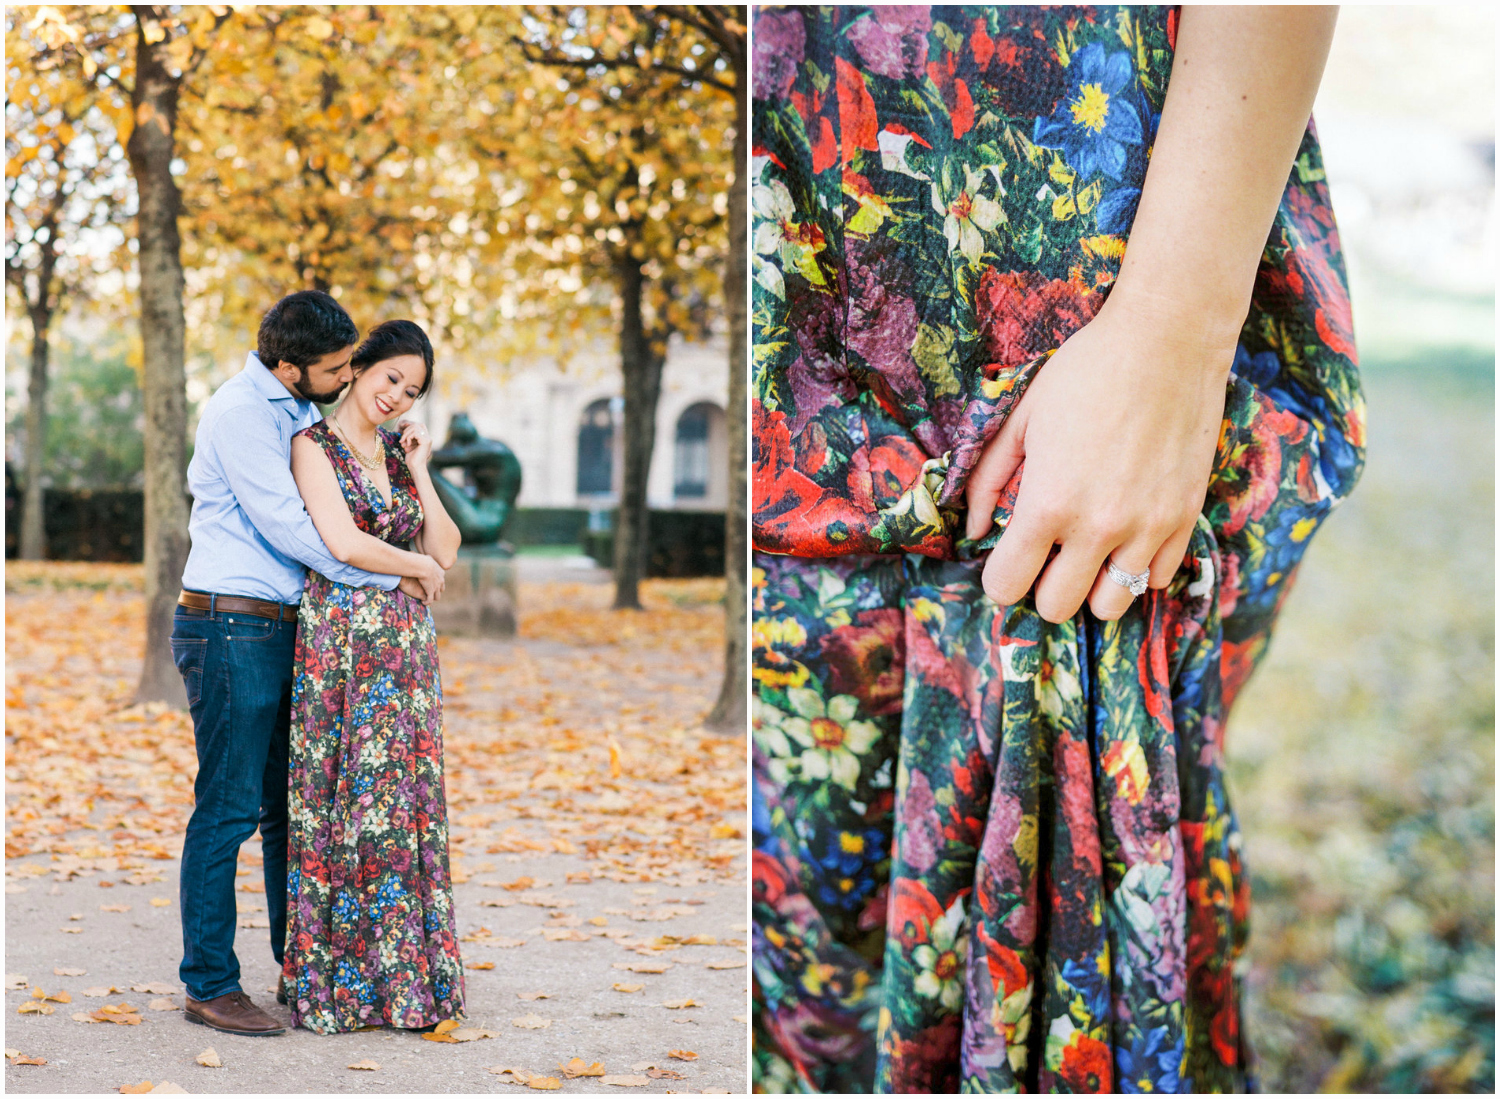 Couple engagement session in Tuileries Garden in Paris